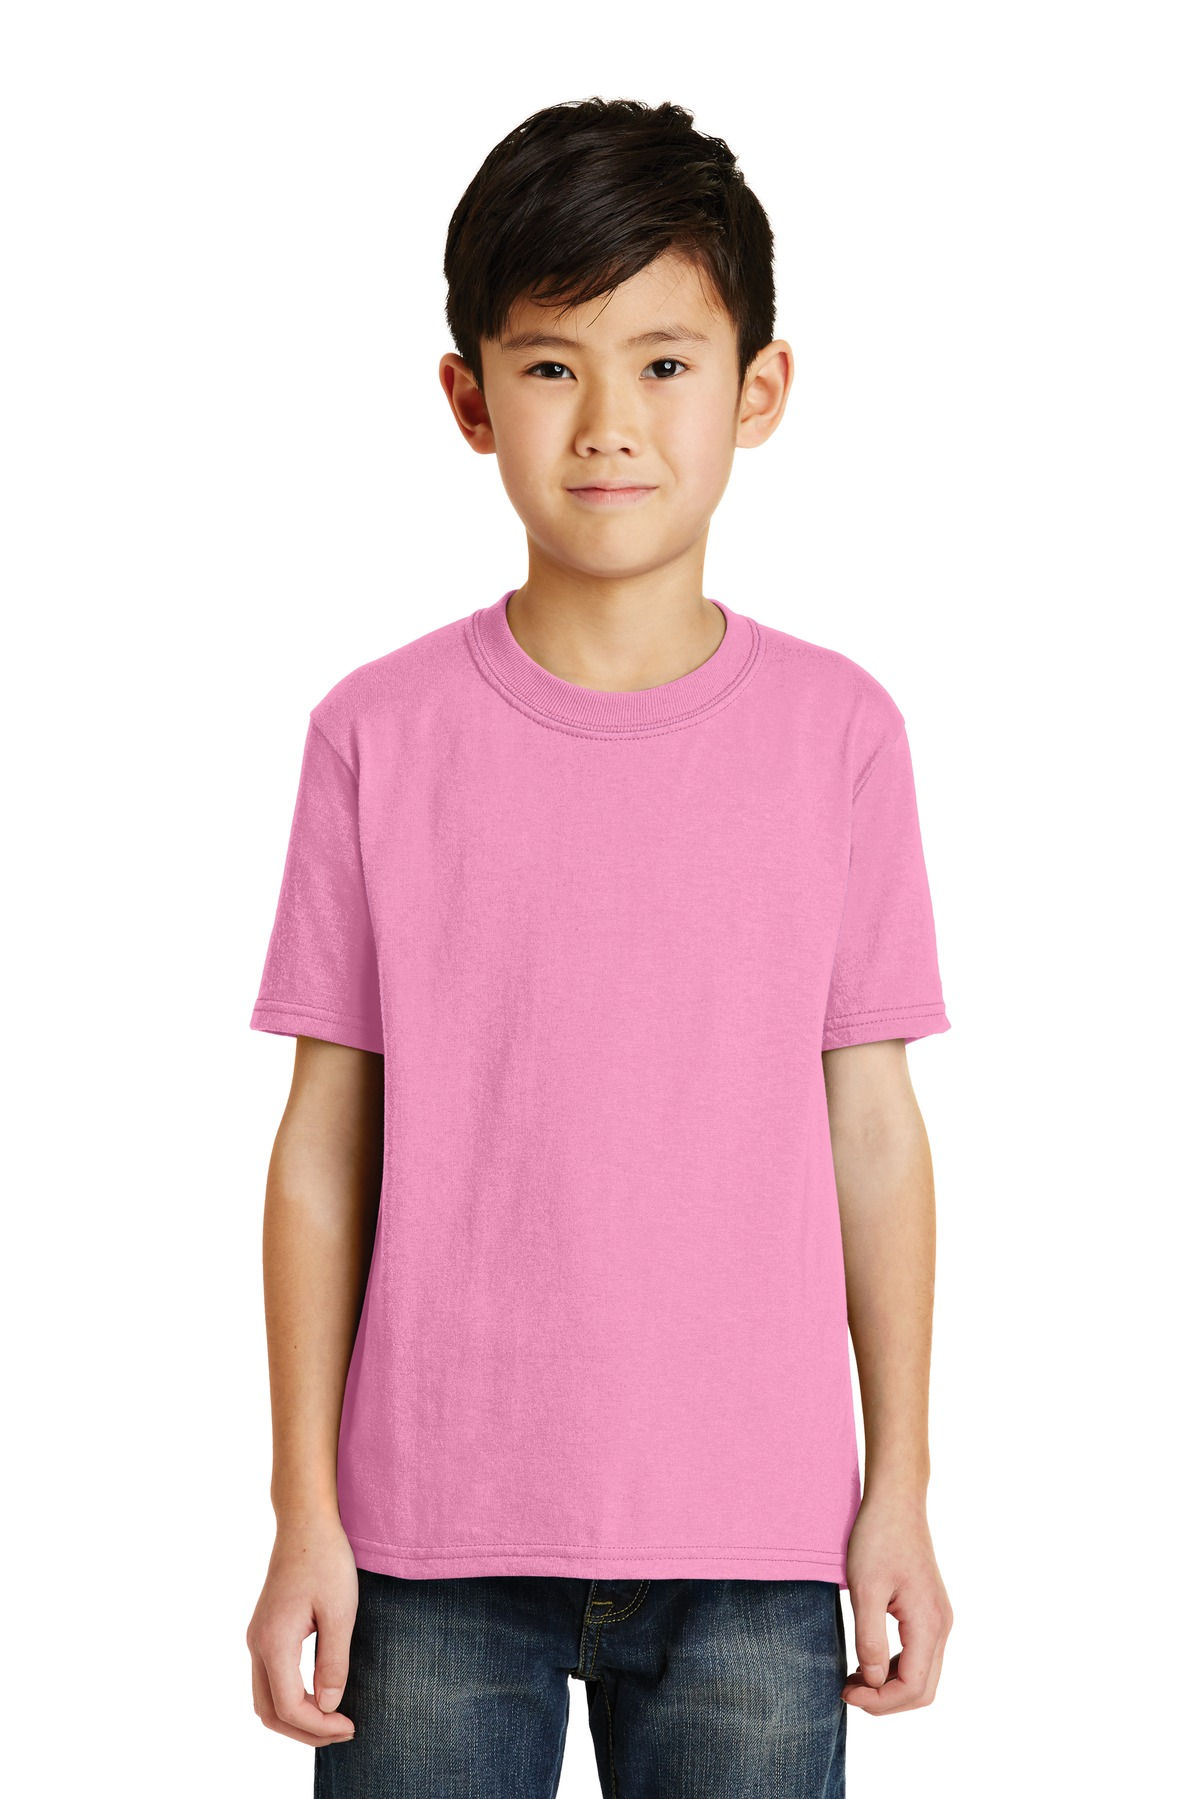 Port & Company ®  - Youth Core Blend Tee.  PC55Y - Candy Pink